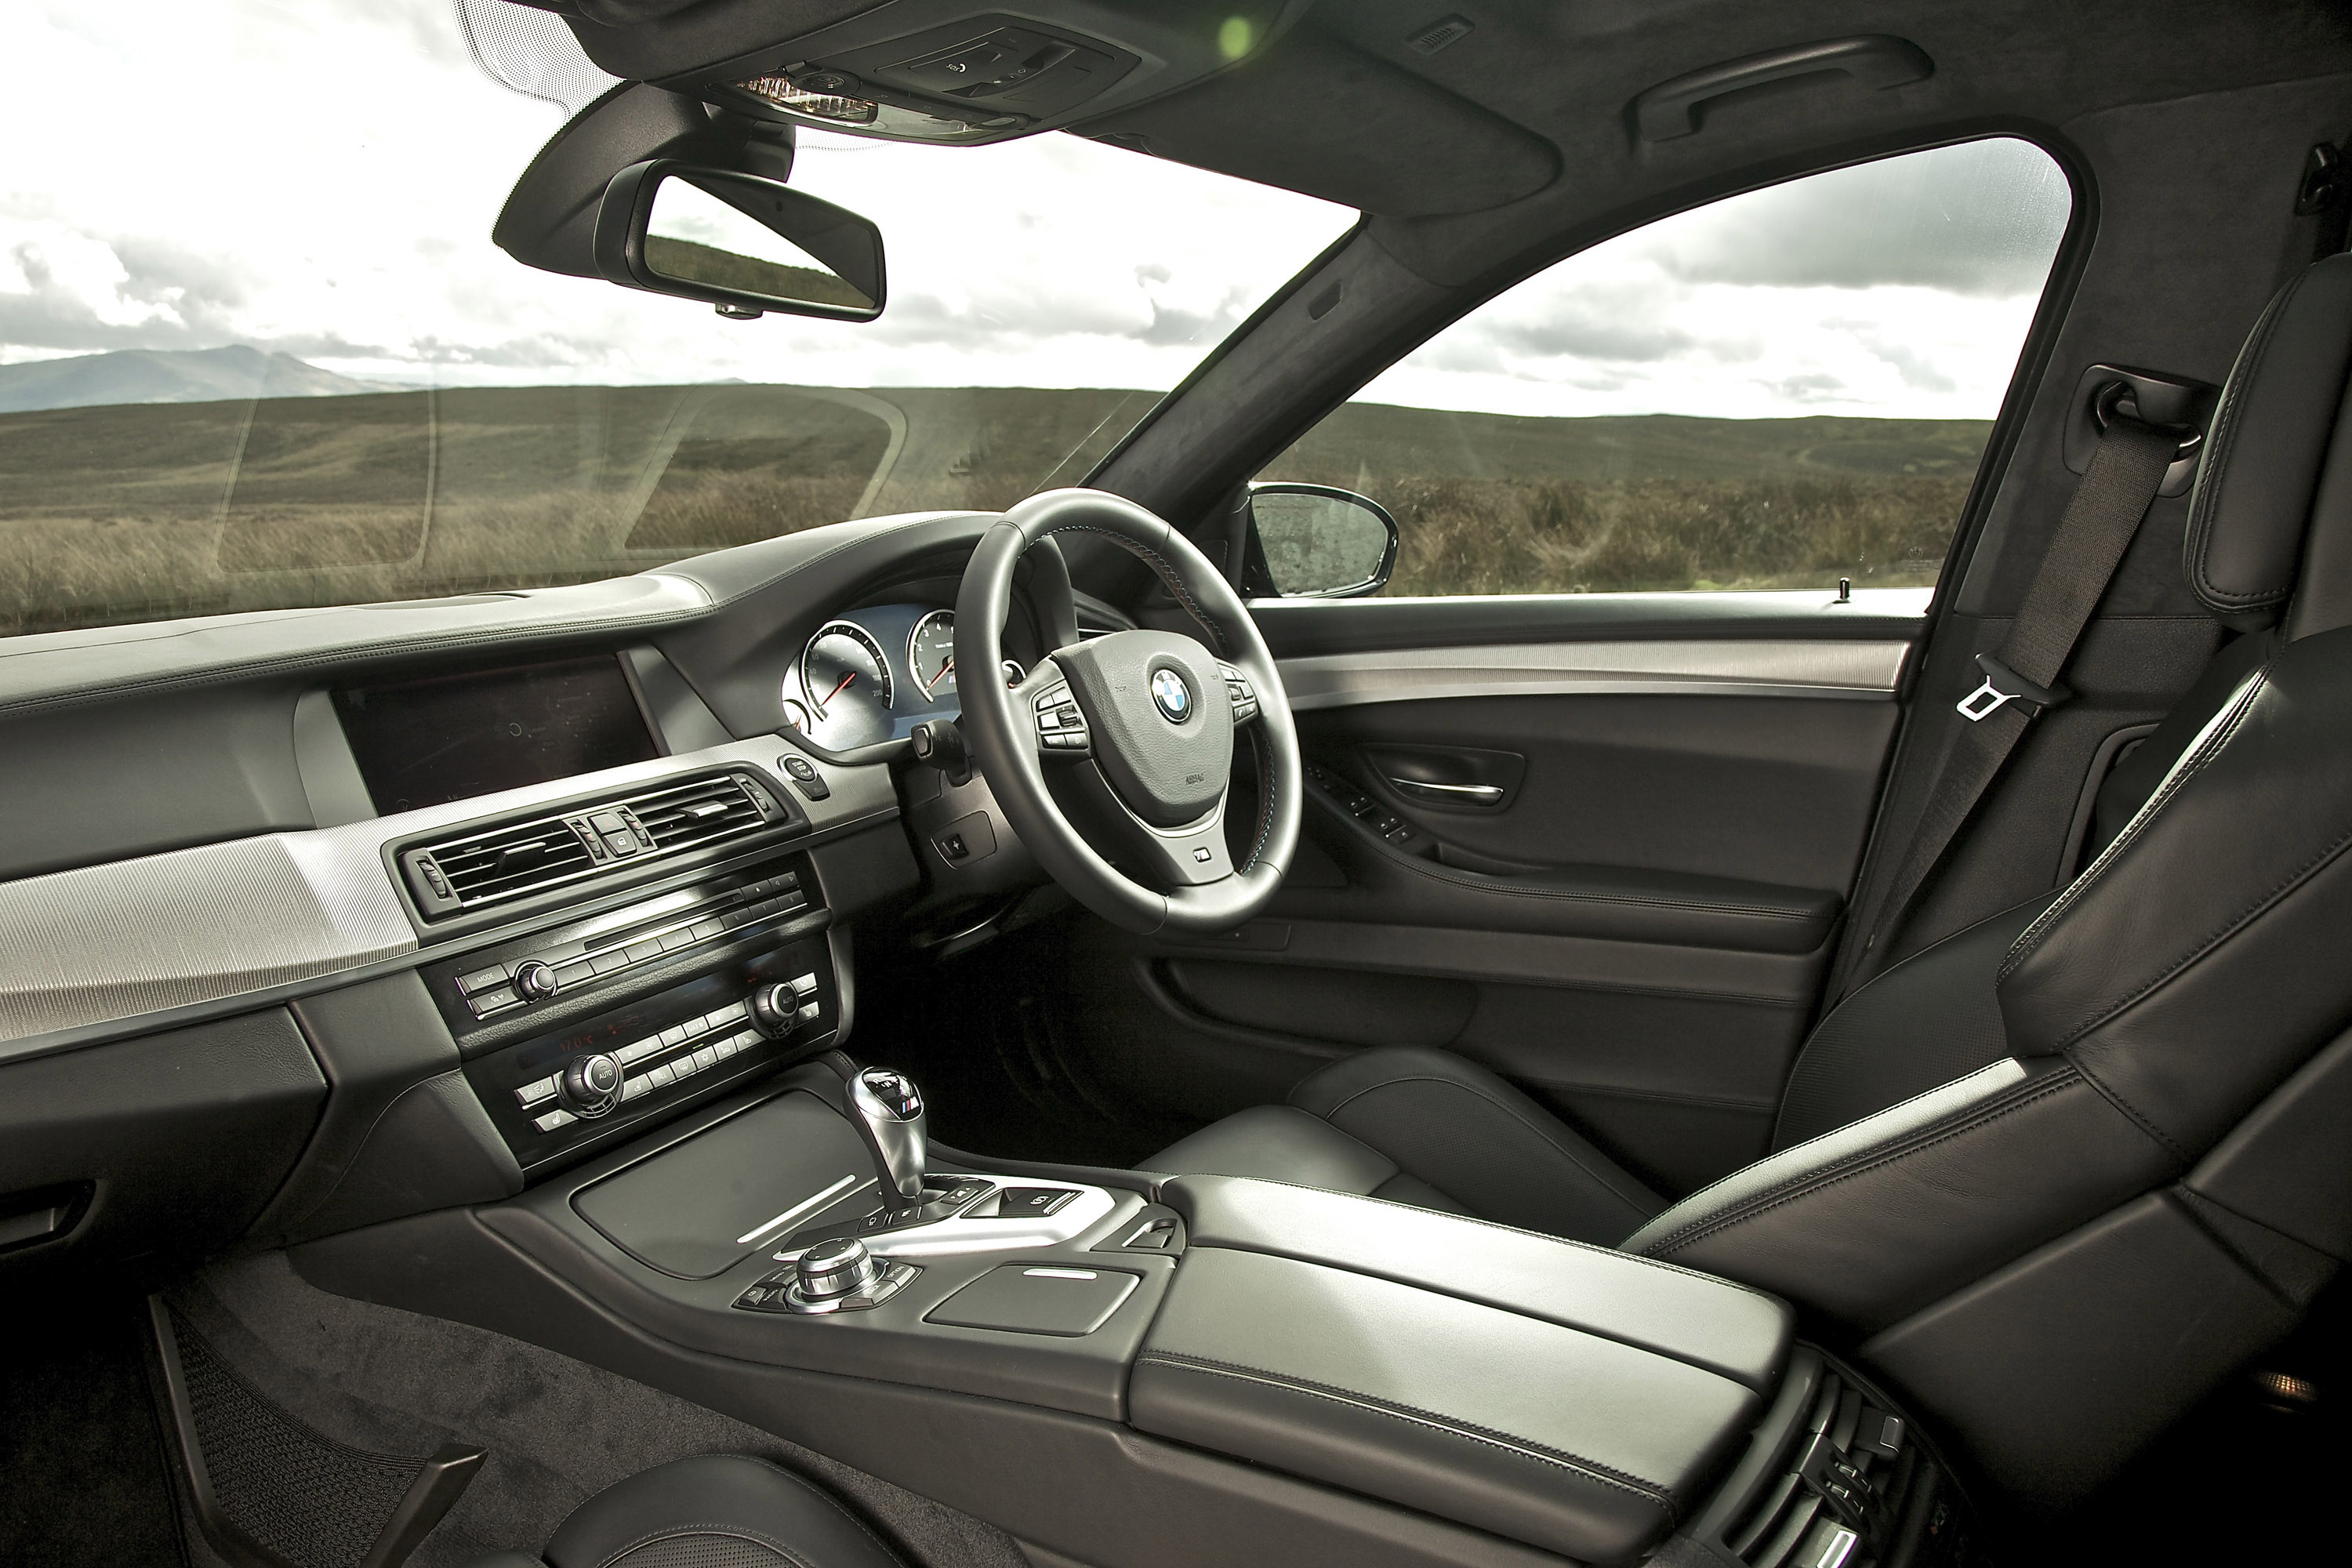 2012 BMW F10 M5 Saloon UK - Picture 60747